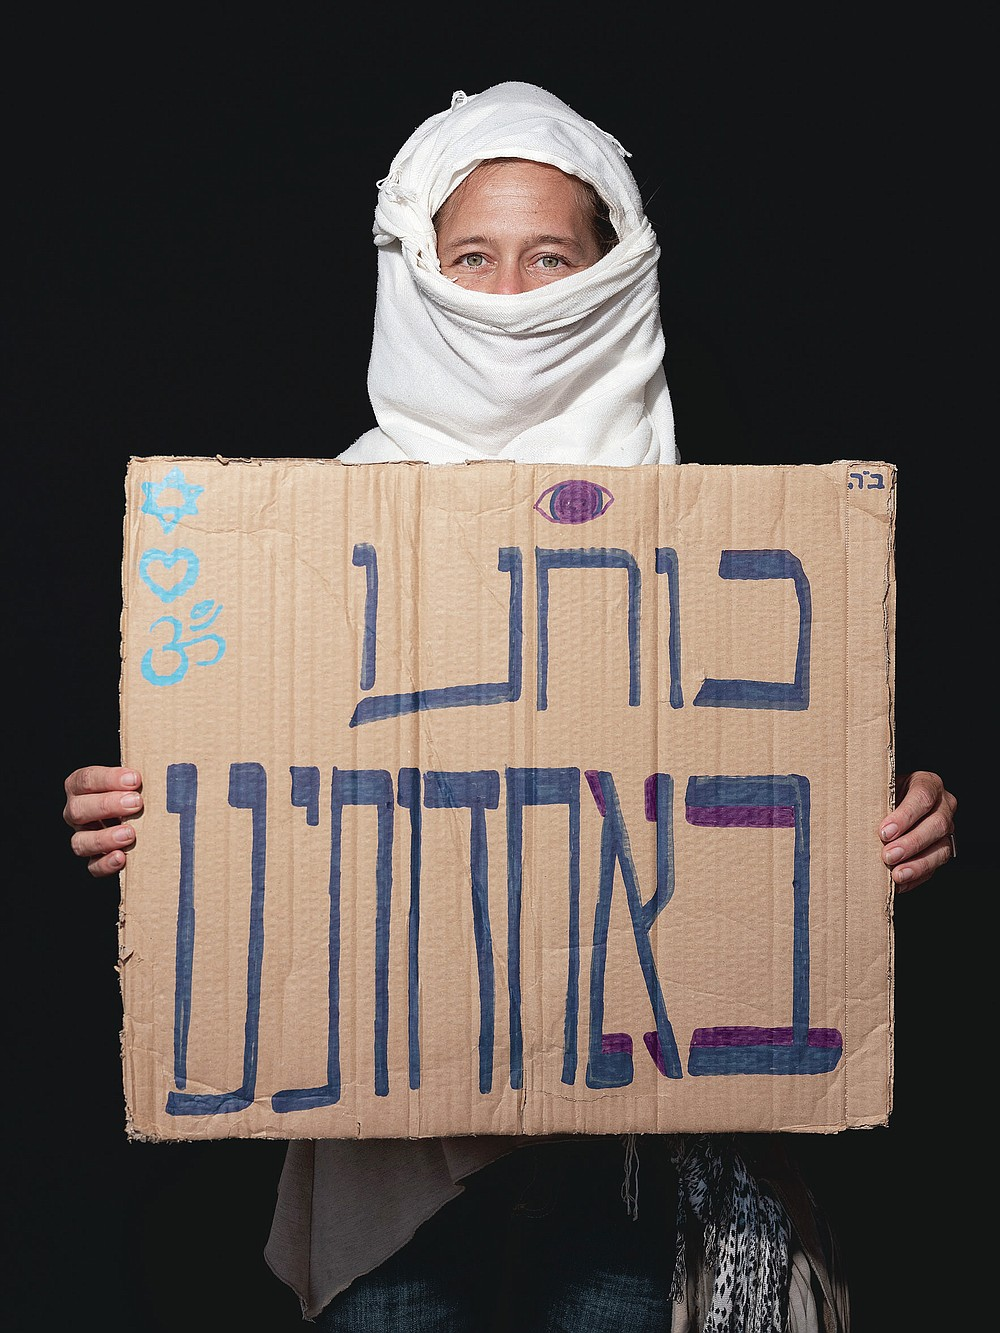 """Michal Esther Katzir, 35, poses for a photo during a protest against Israel's Prime Minister Benjamin Netanyahu, outside his residence in Jerusalem, Thursday, July 23, 2020. Hebrew on sign reads """"Our strength is in our unity"""". The wave of colorful and combative demonstrations against Netanyahu and his perceived failure to handle the country's deepening economic crisis have been characterized by youth. With flags, facemasks, drums, placards and an assortment of props, thousands have been taking to the streets to demand change in a variety of unique ways. (AP Photo/Oded Balilty)"""